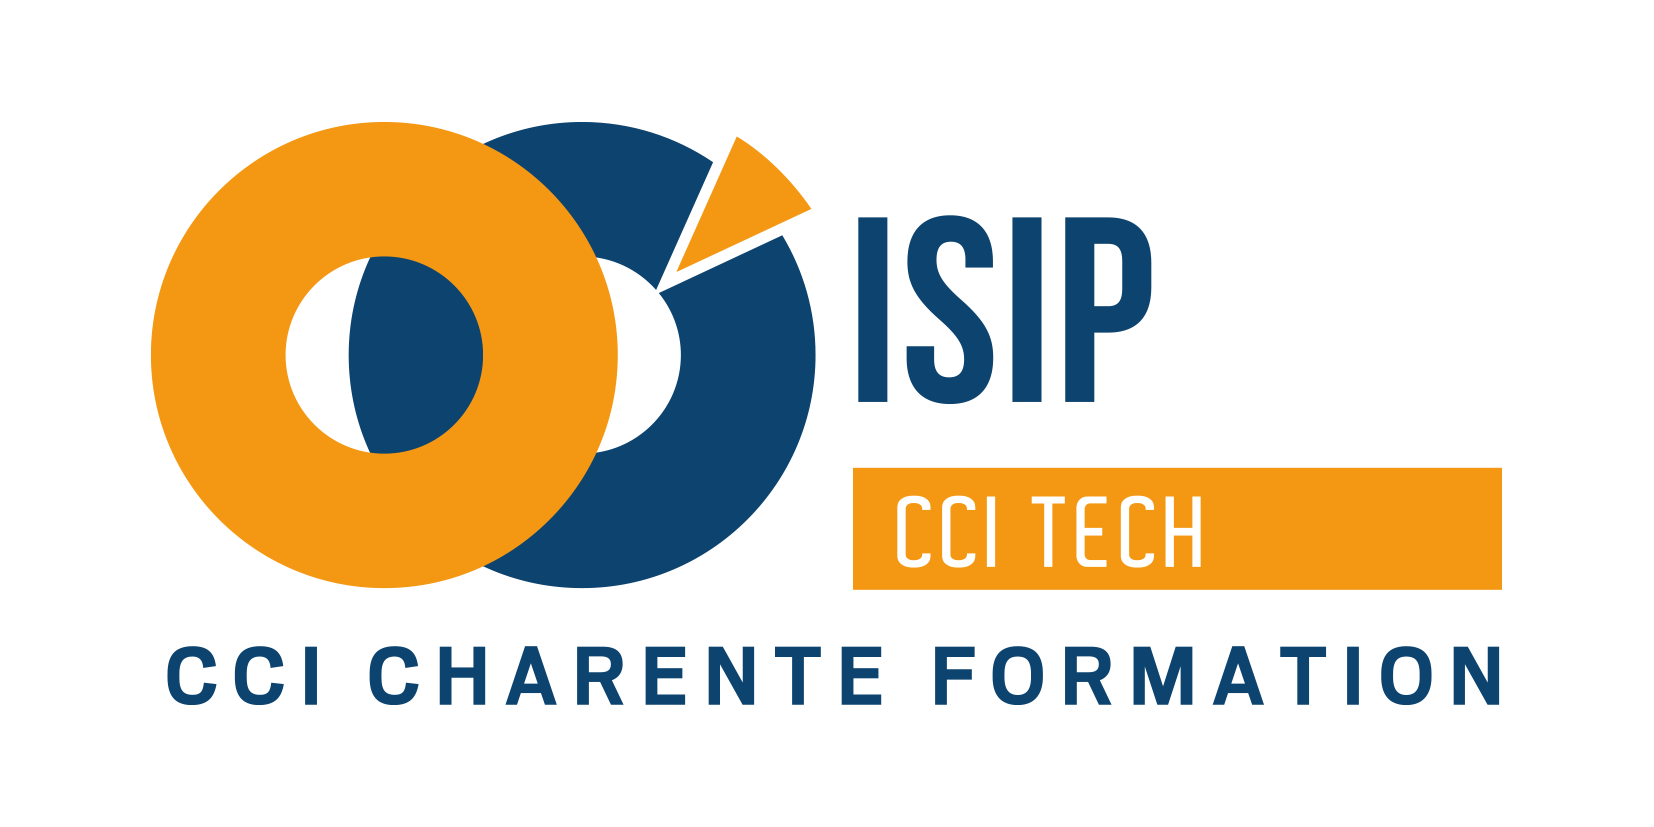 ISIP CCI Tech - CCI Charente Formation